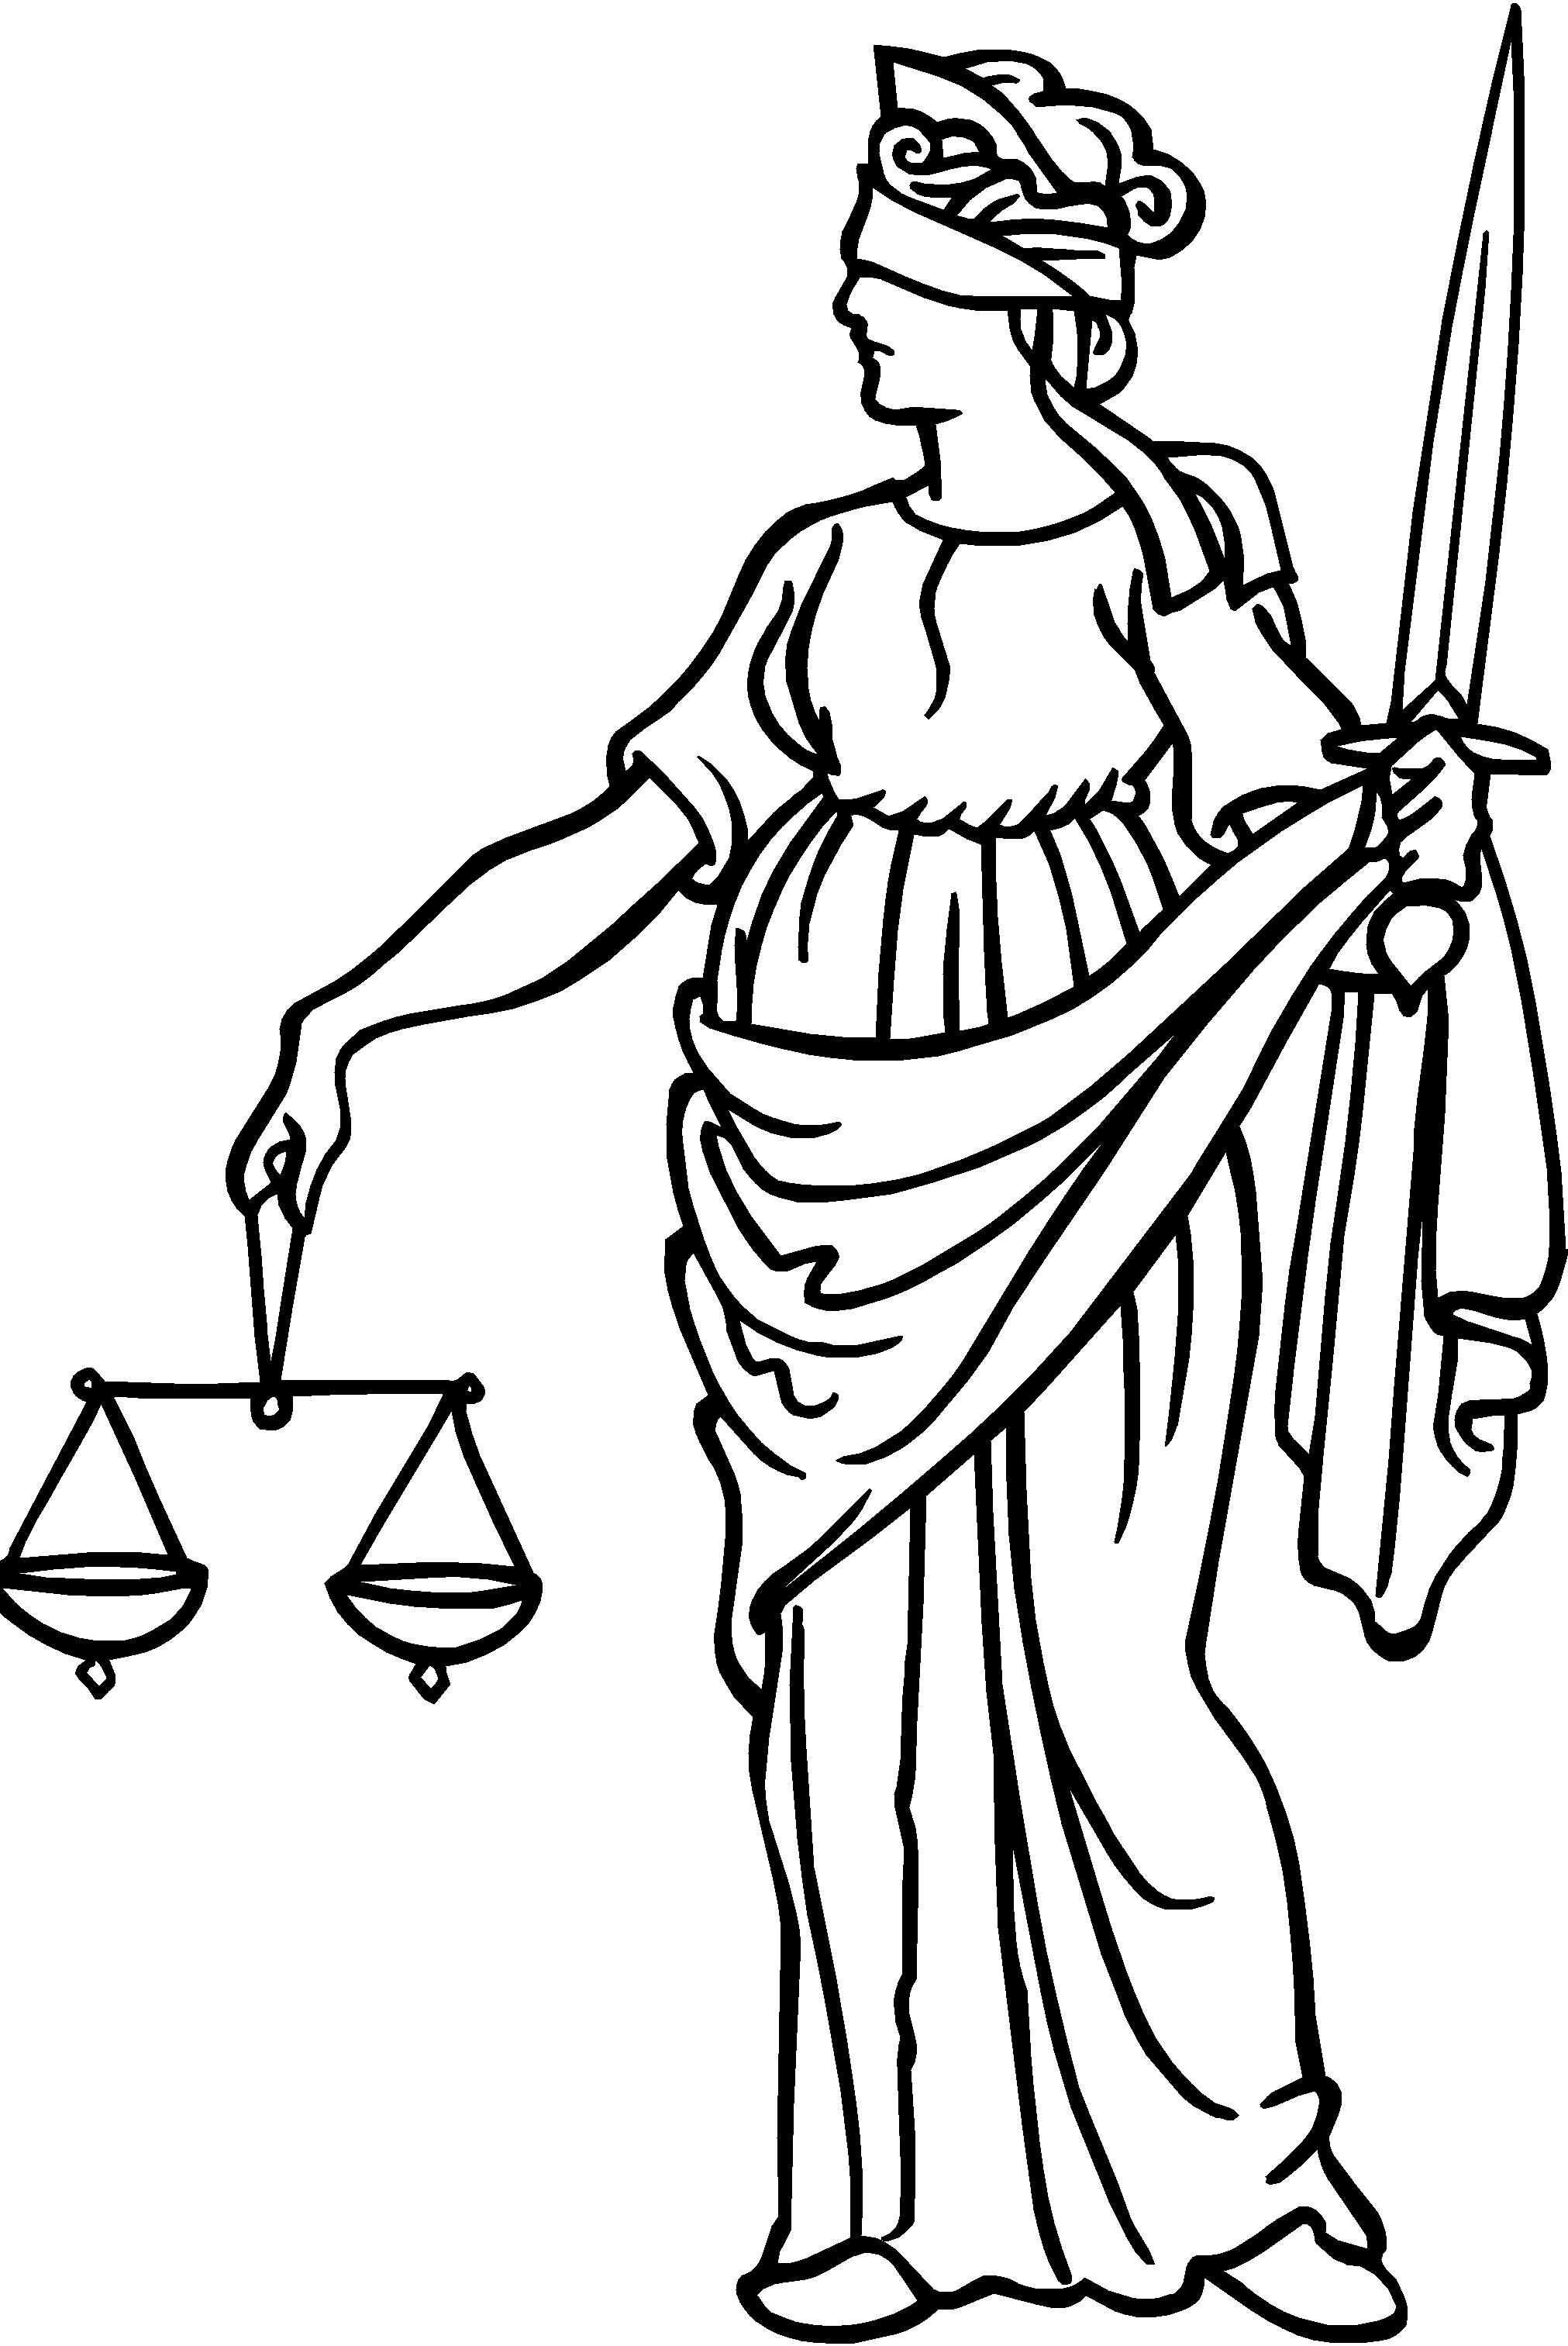 Blind justice clipart.